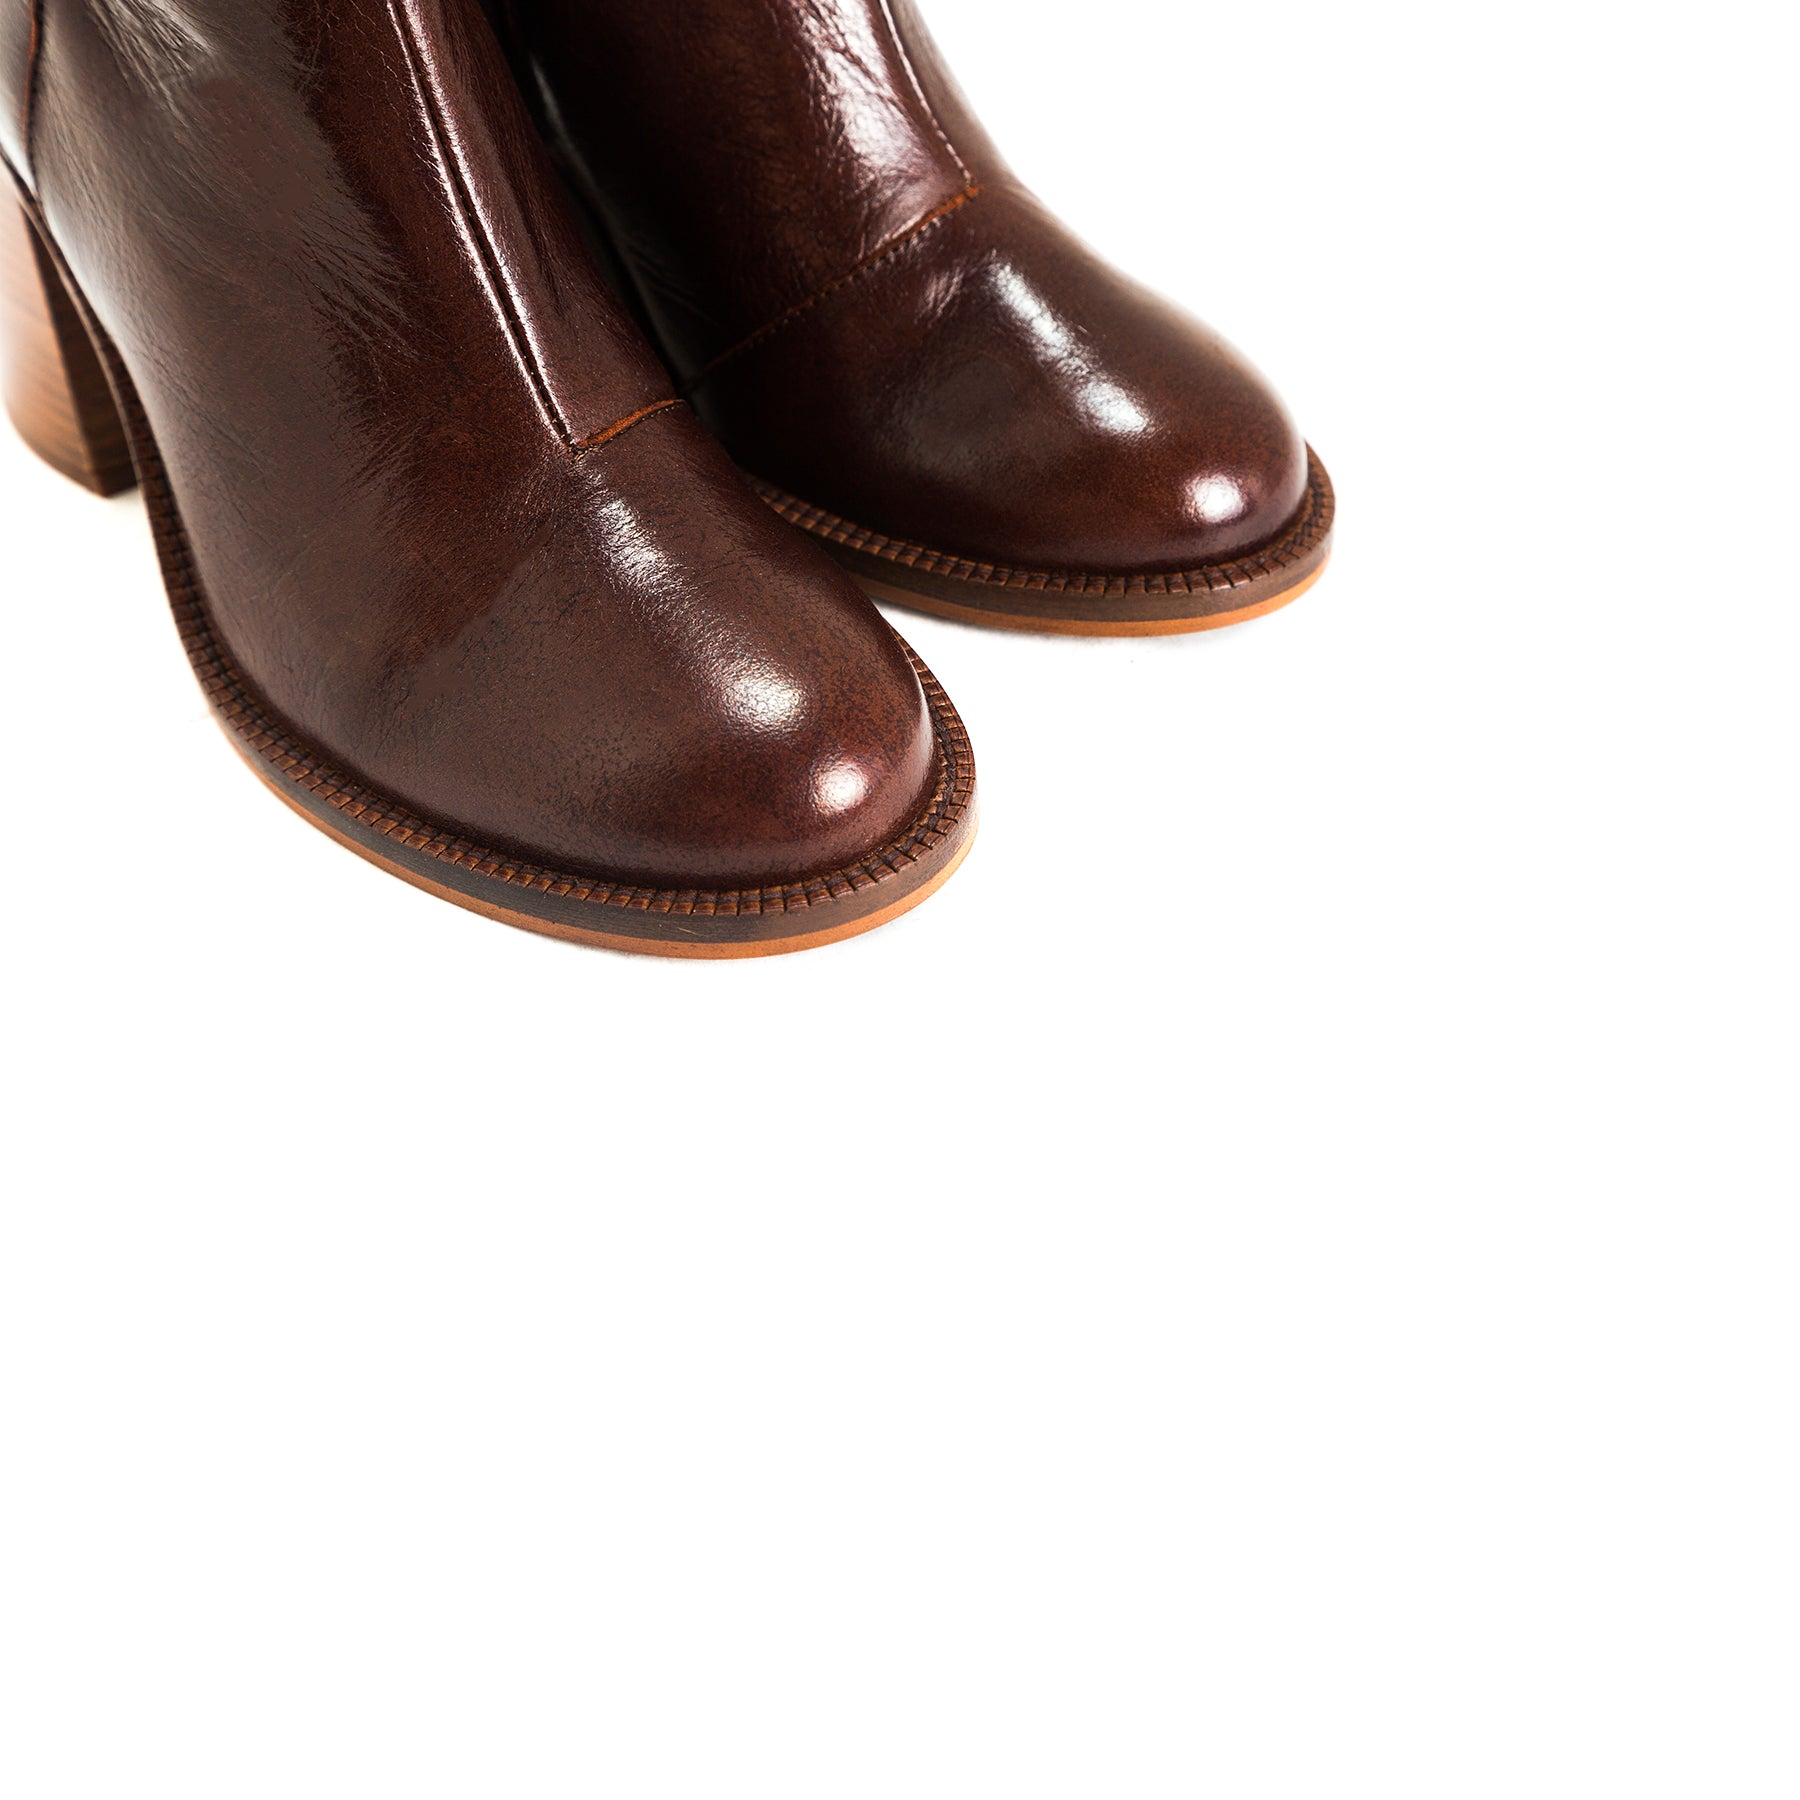 Waco Brown Leather Booties